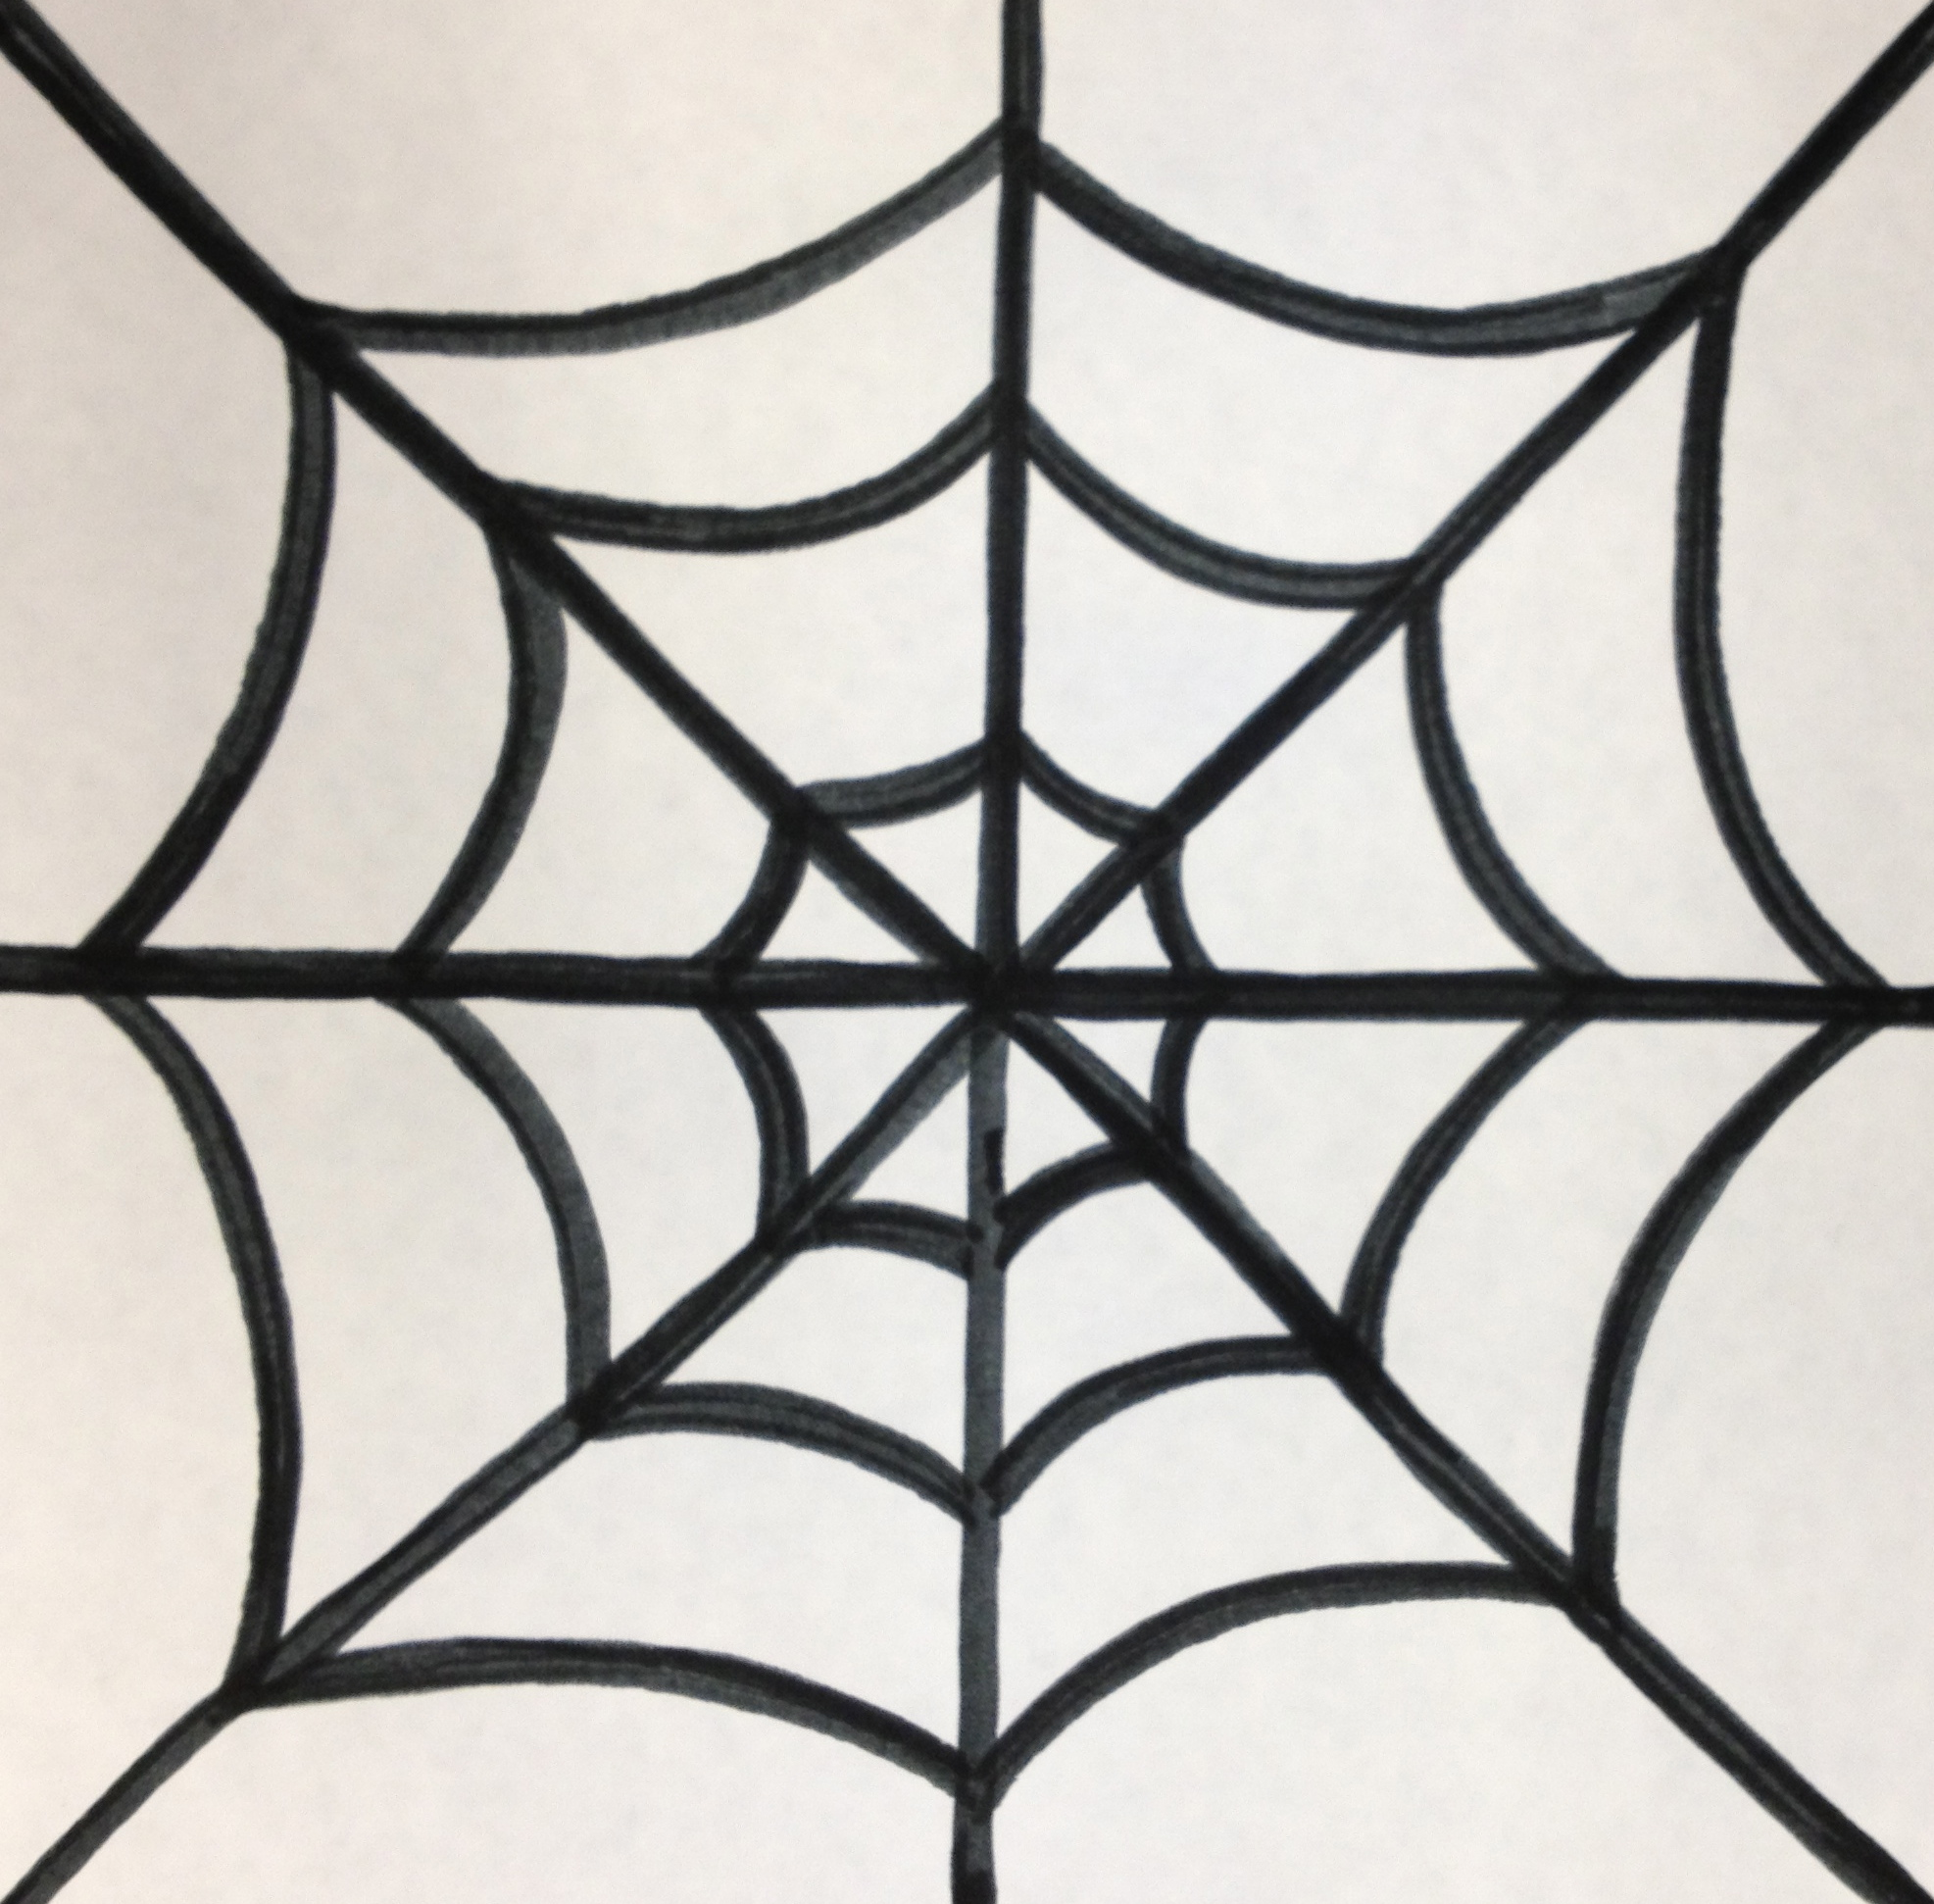 Spider in web drawing - photo#23